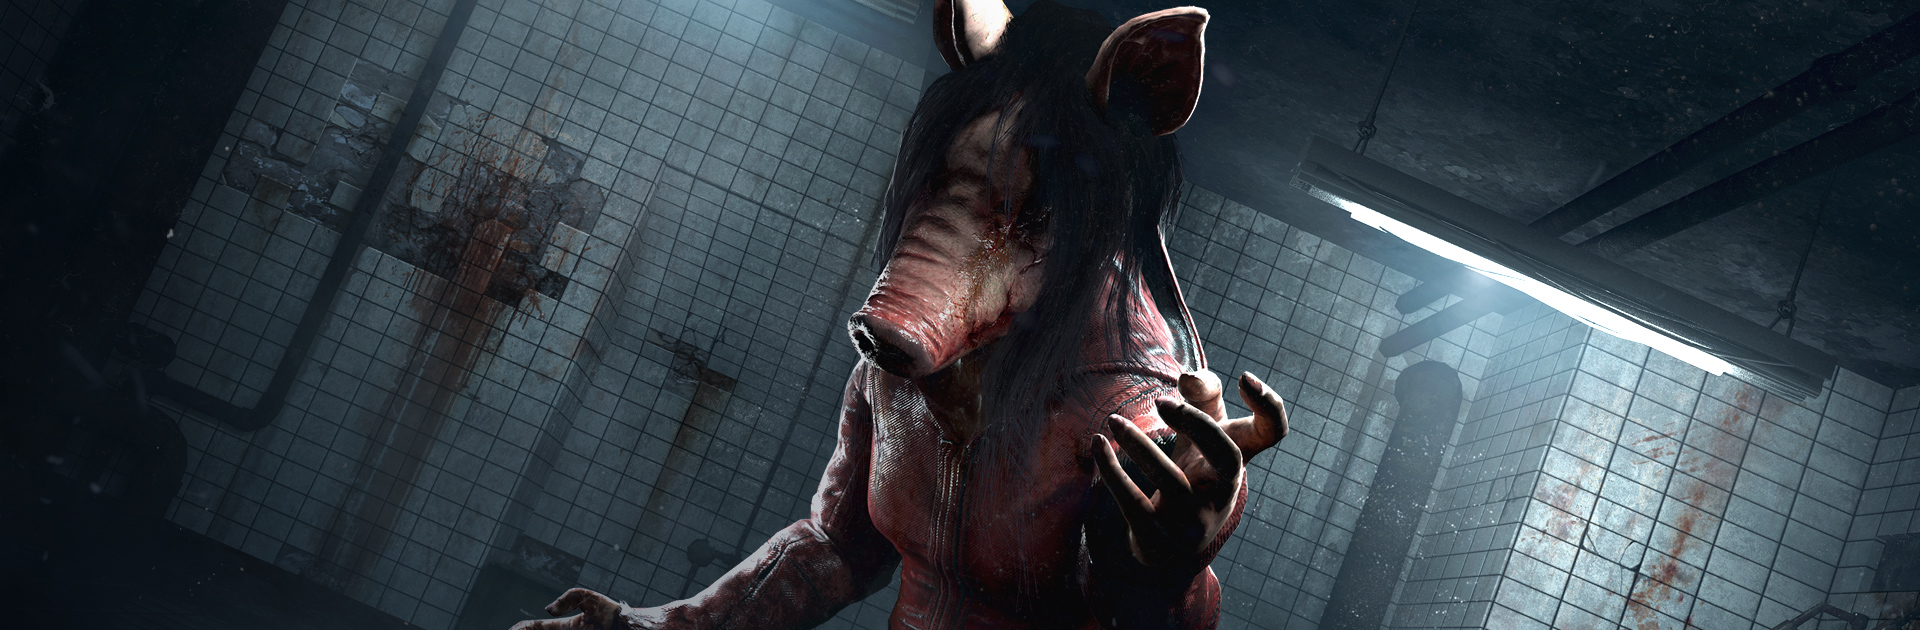 """Dead by Daylight: """"Saw"""" Chapter Launches on Steam, Xbox One, and Playstation 4"""